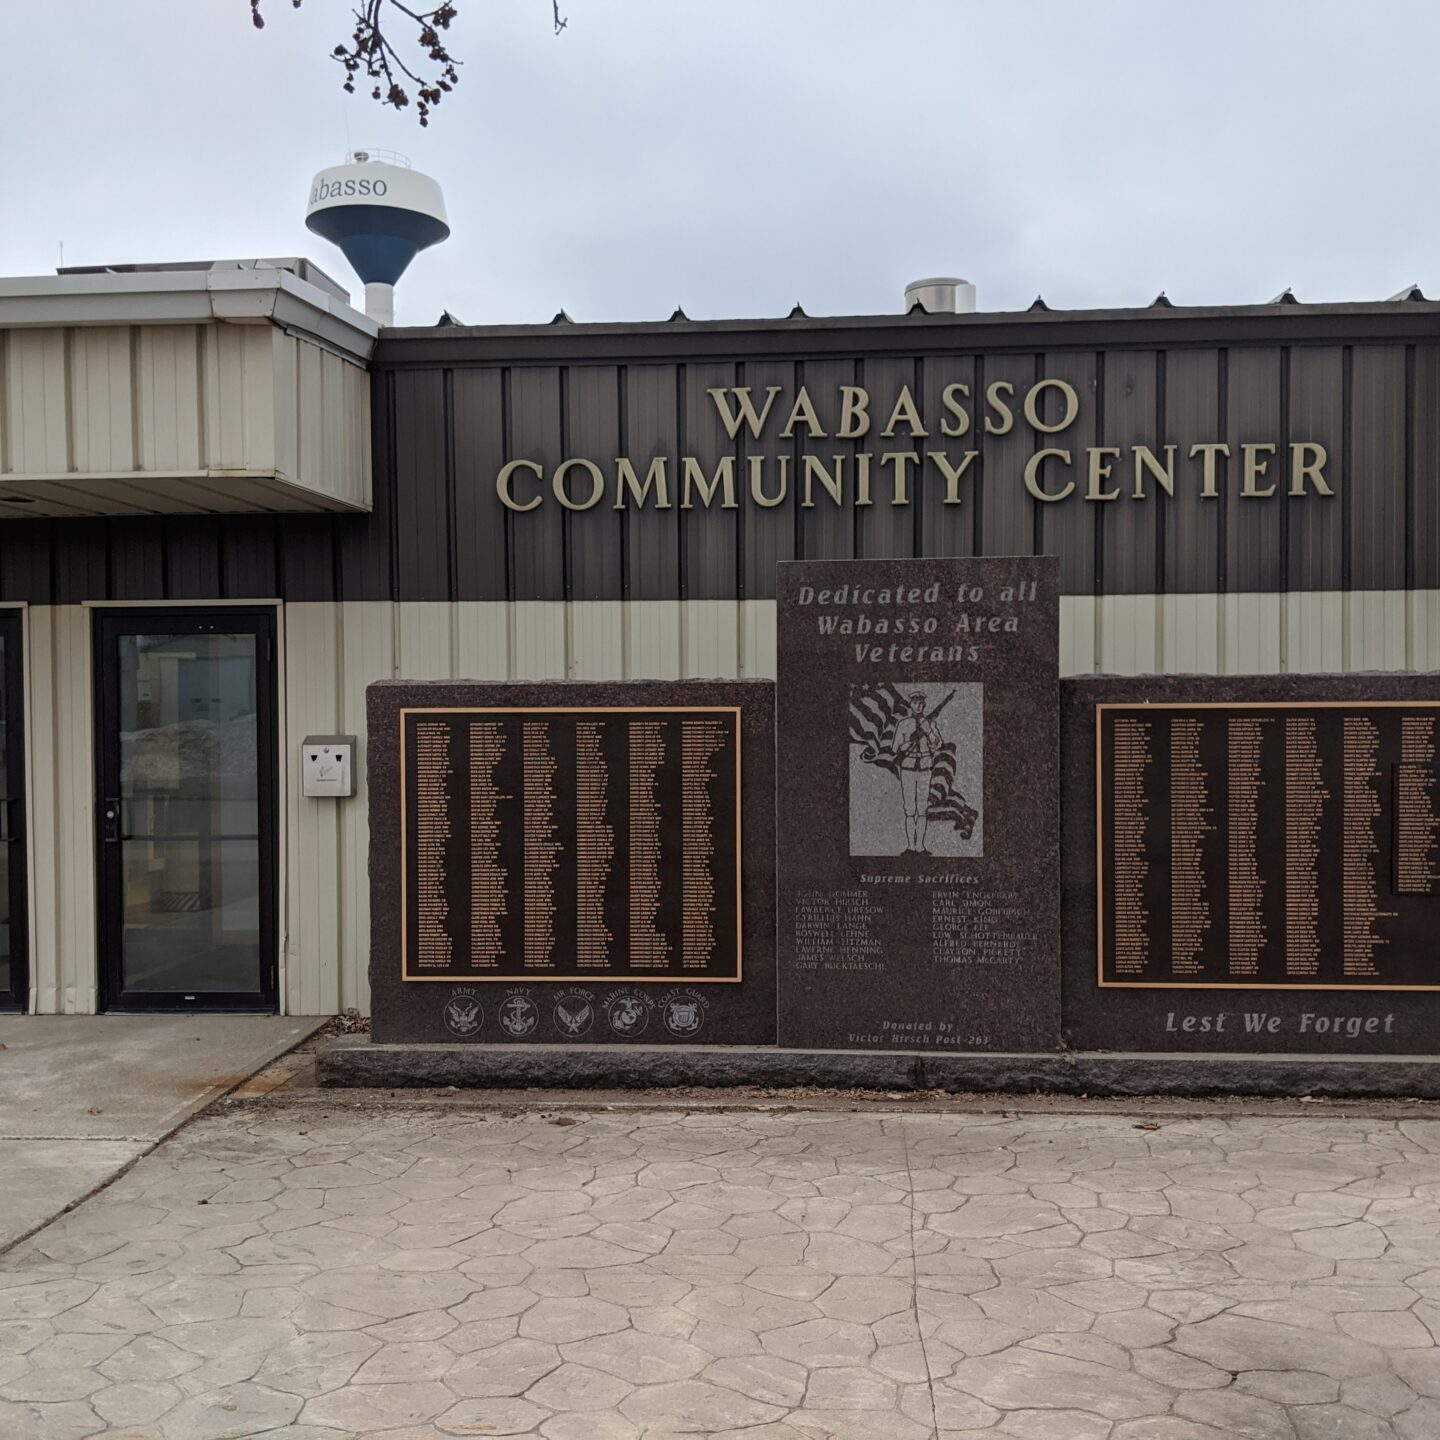 Wabasso Community Center Veterans Memorial